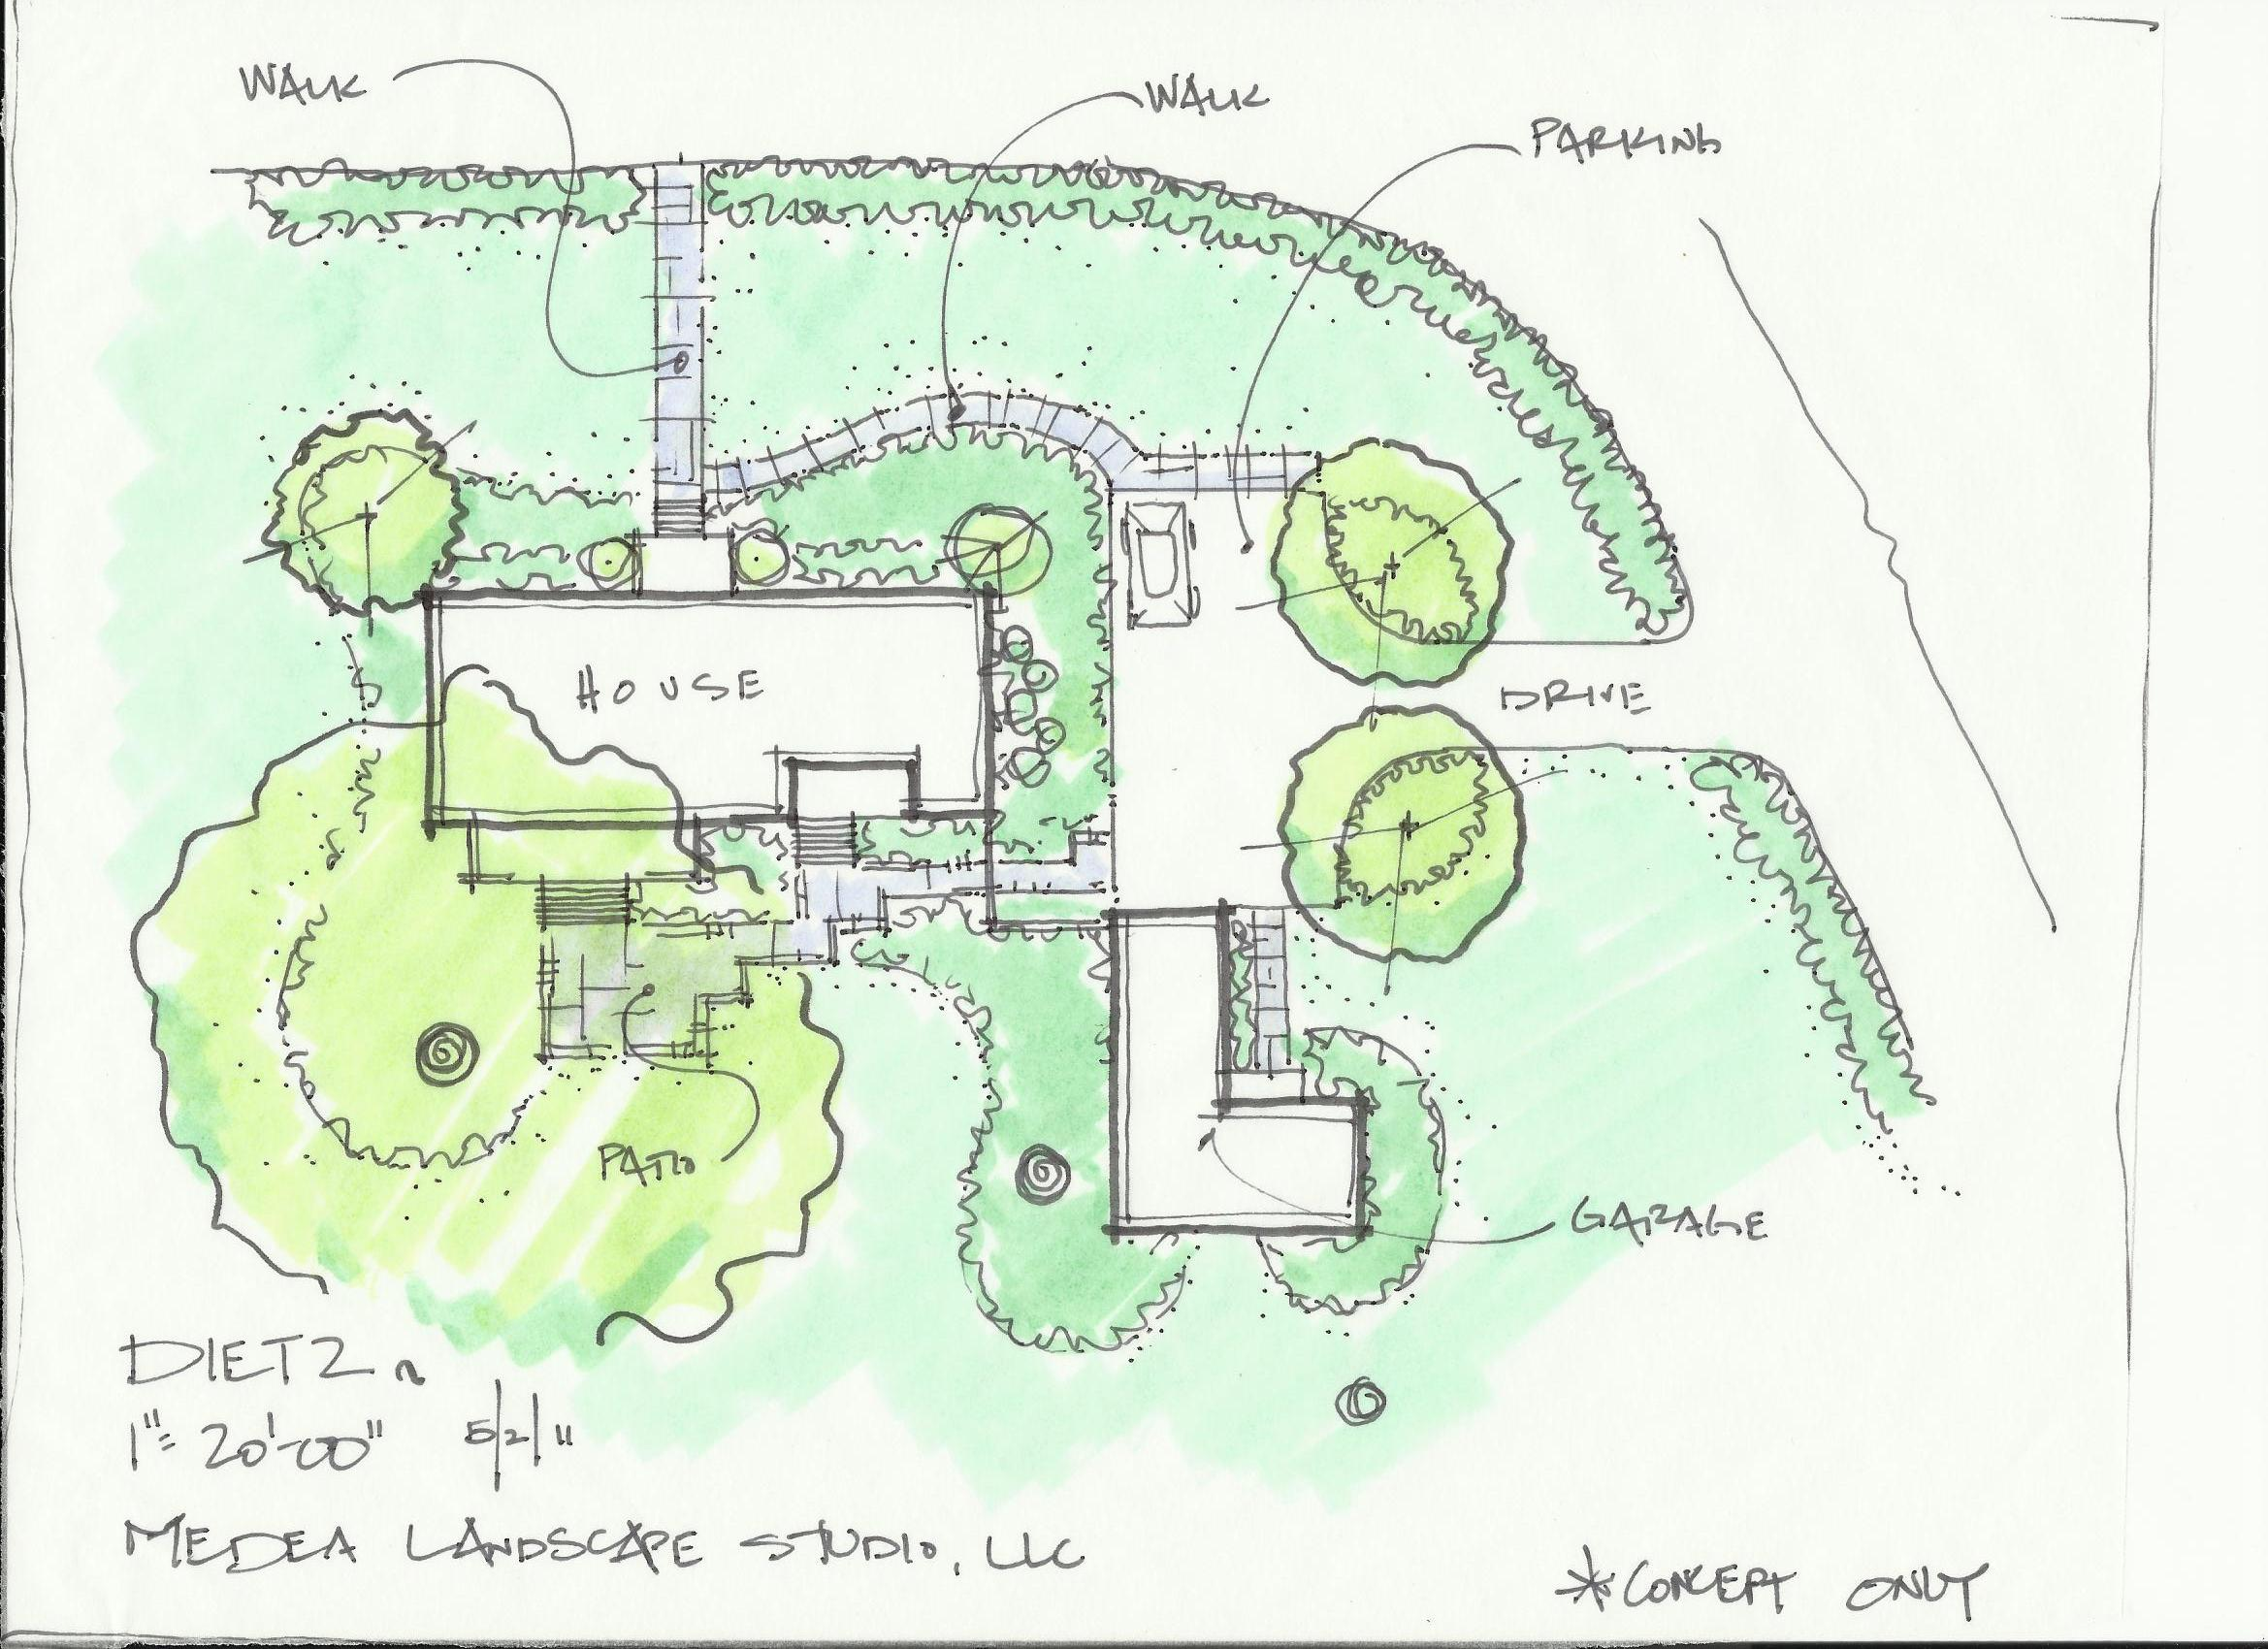 2338x1700 Home Architecture What To Consider When Designing Site Plan